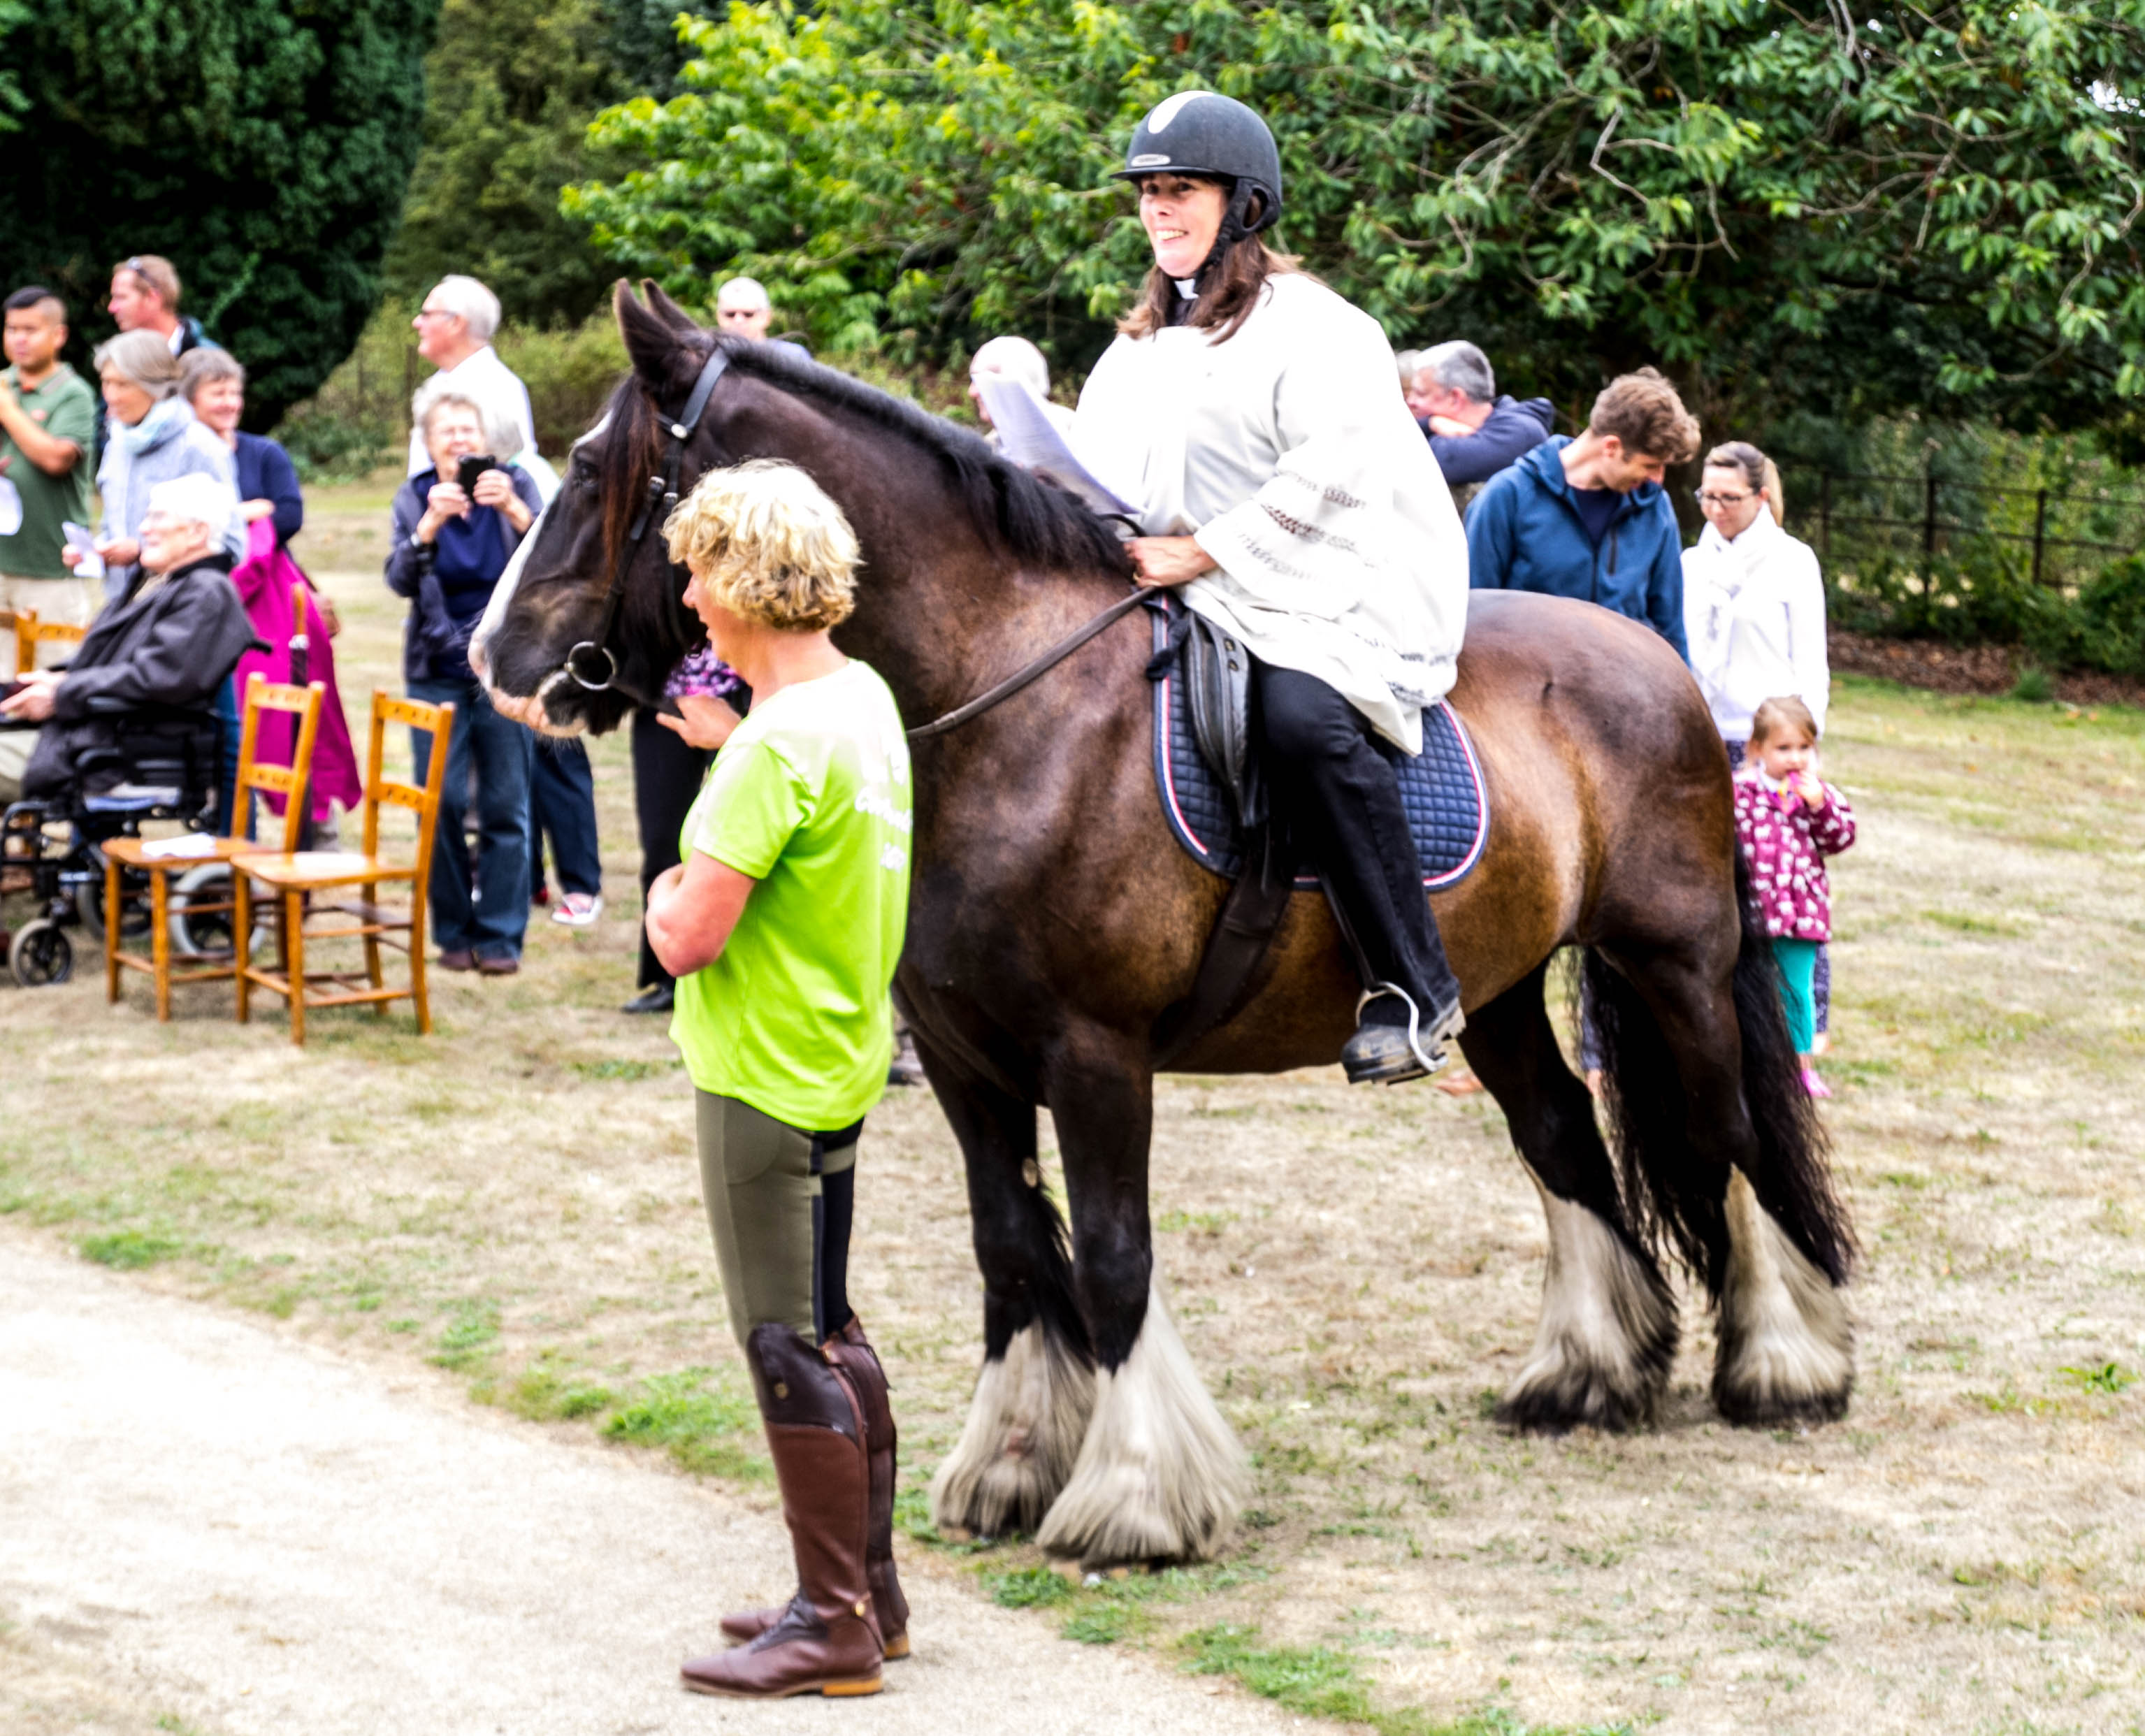 IMG 9802 Ginni on Horse Horse Blessing Service 12th August 2018-9802